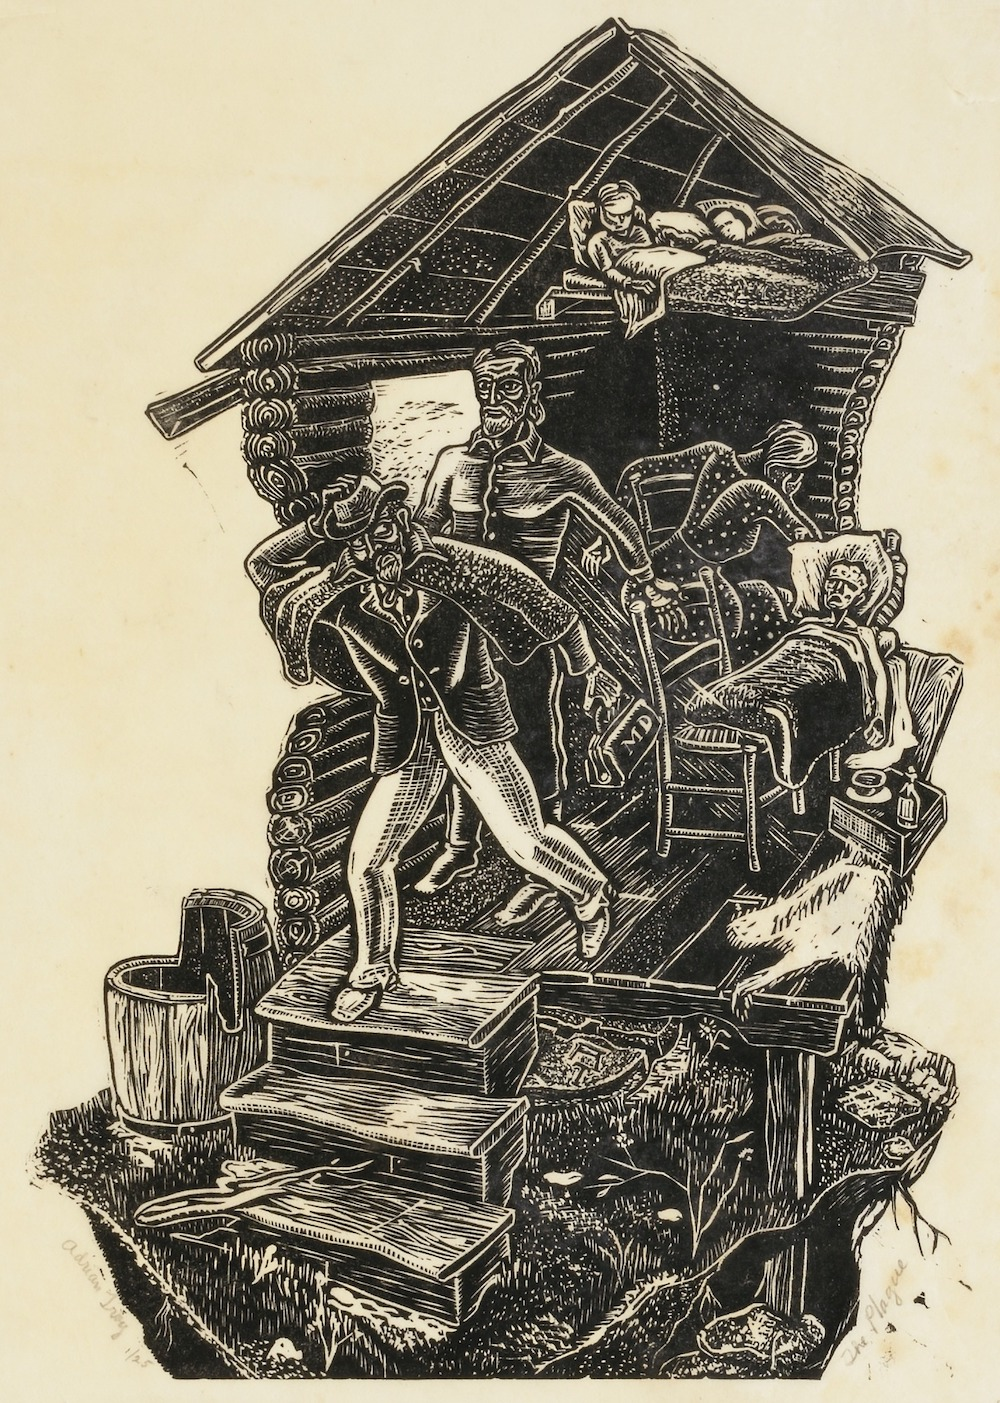 A woodcut showing the inside of a home. Several people are sick, while others care for them. A doctor is on his way out the door.